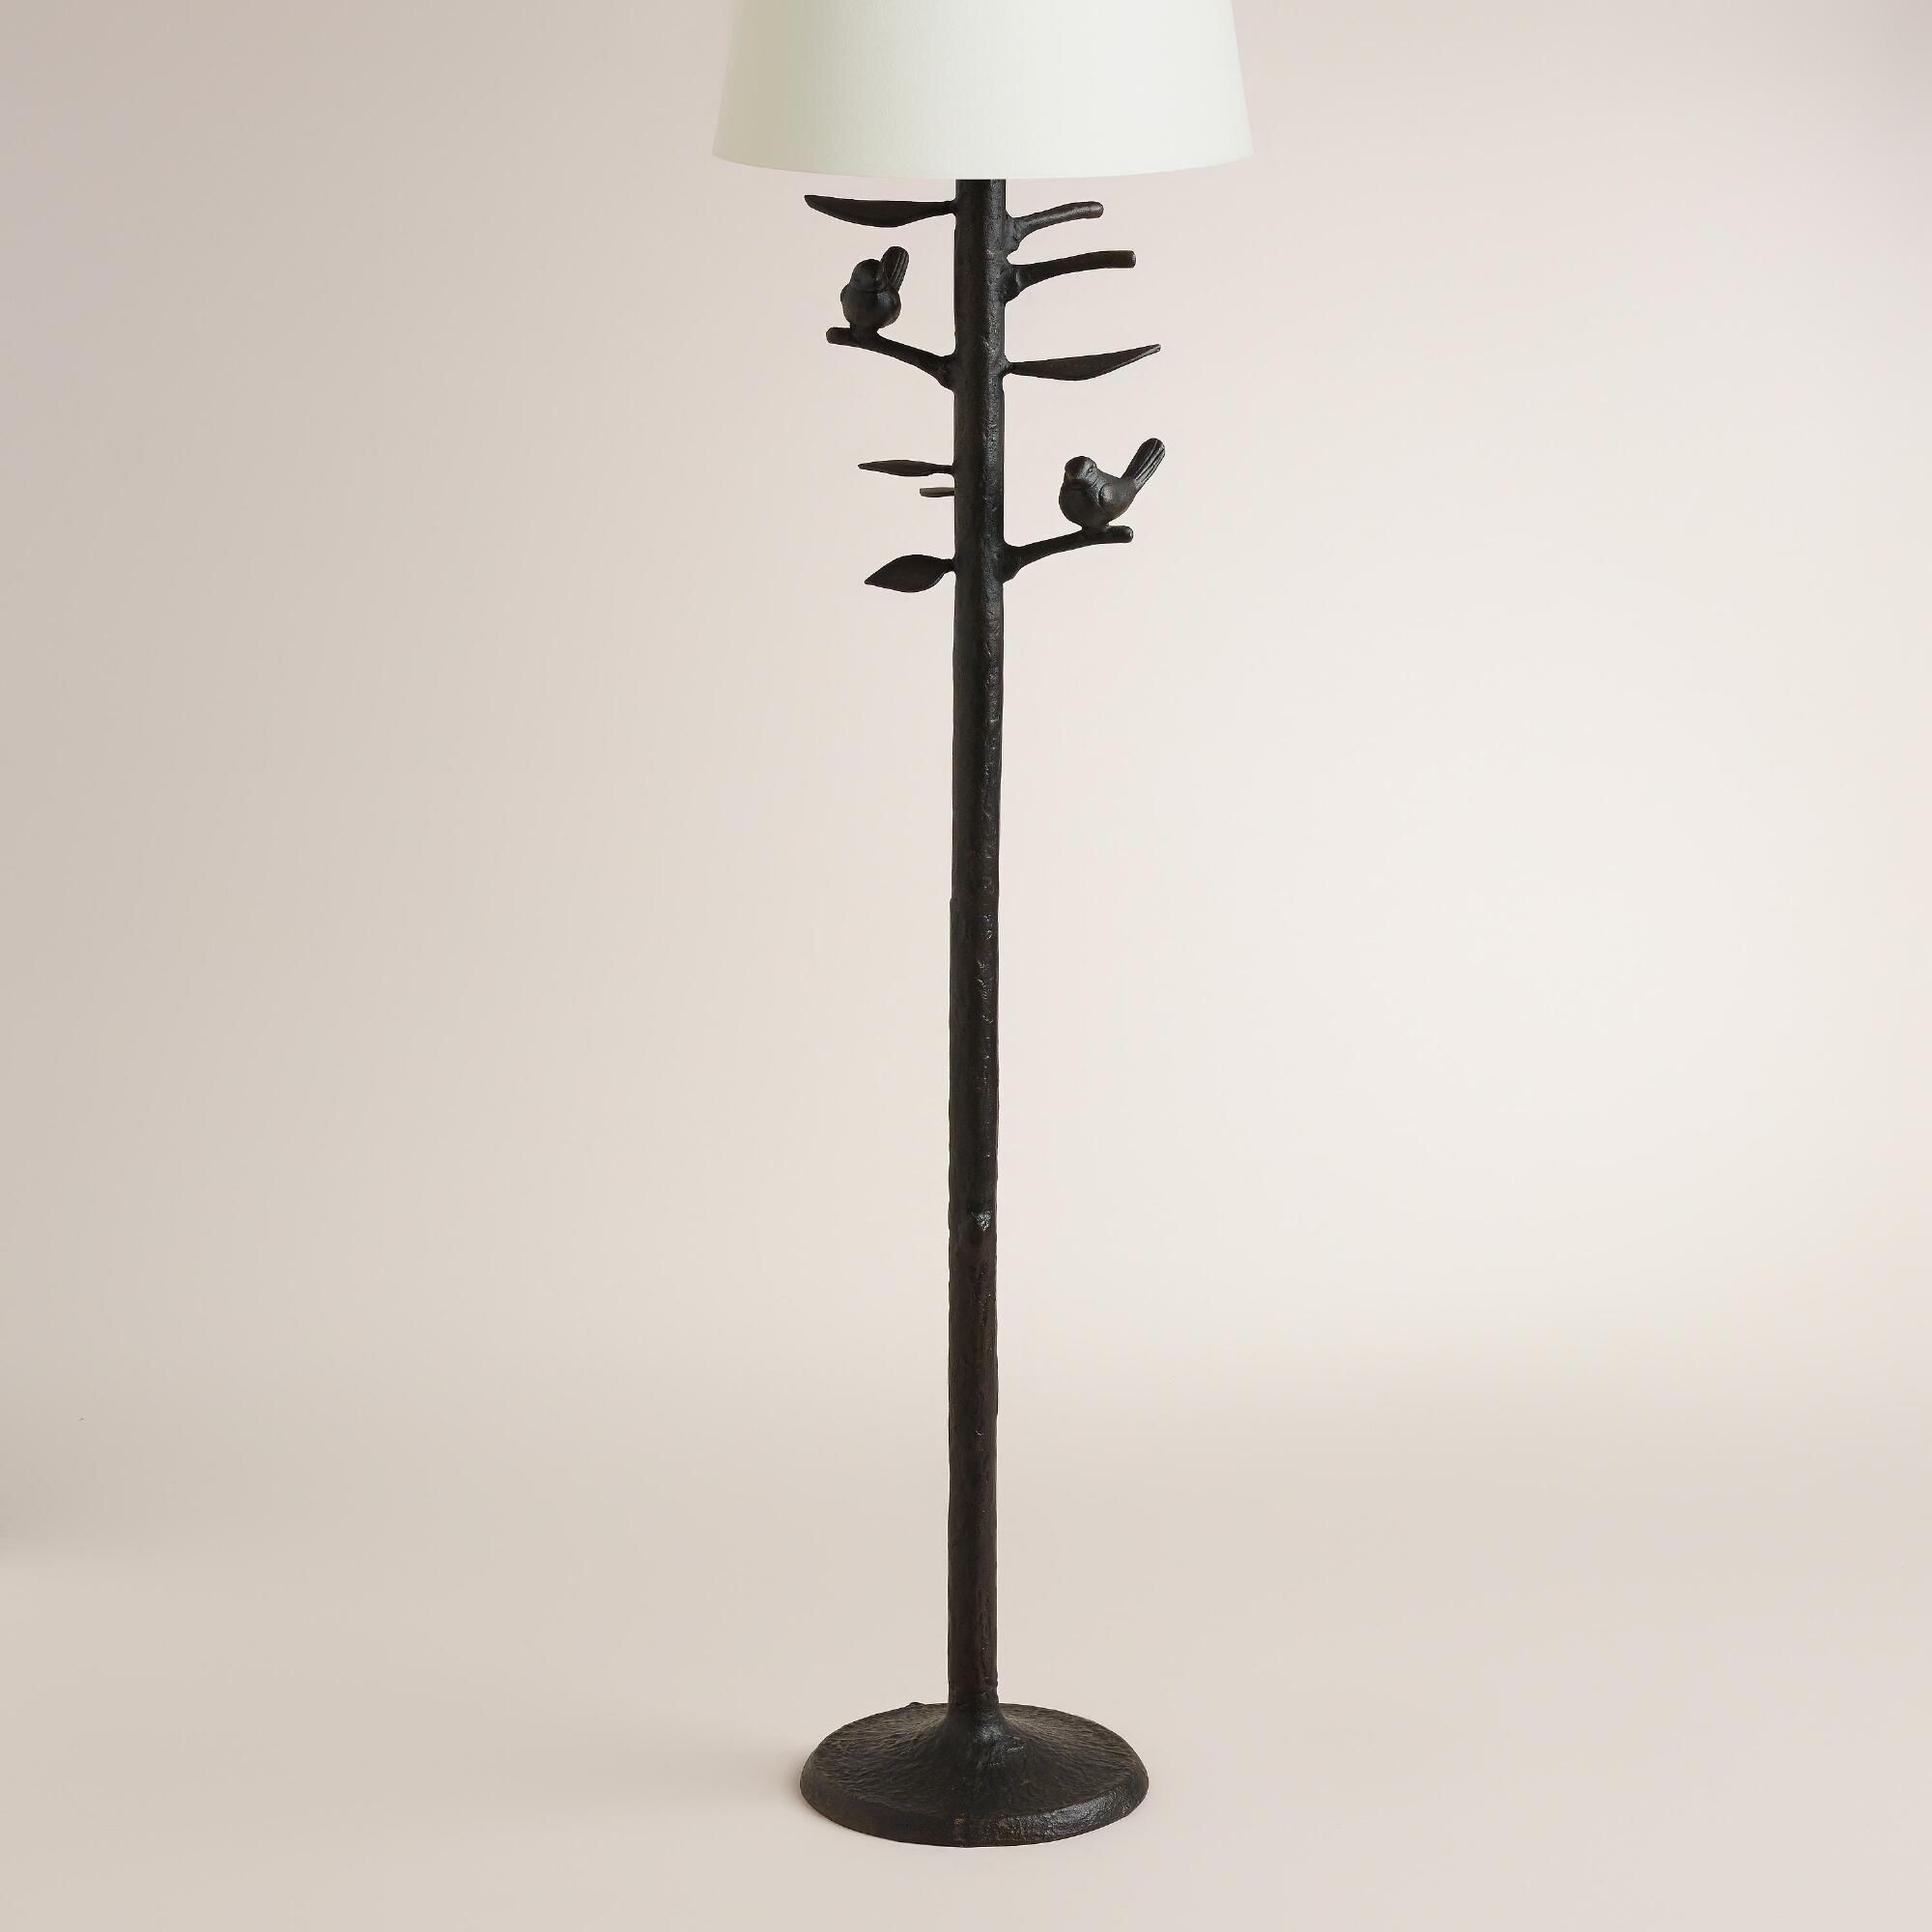 Floor Lamp Base Entrancing Woodlands Floor Lamp Base  Lamp Bases Floors And The Outdoors Inspiration Design